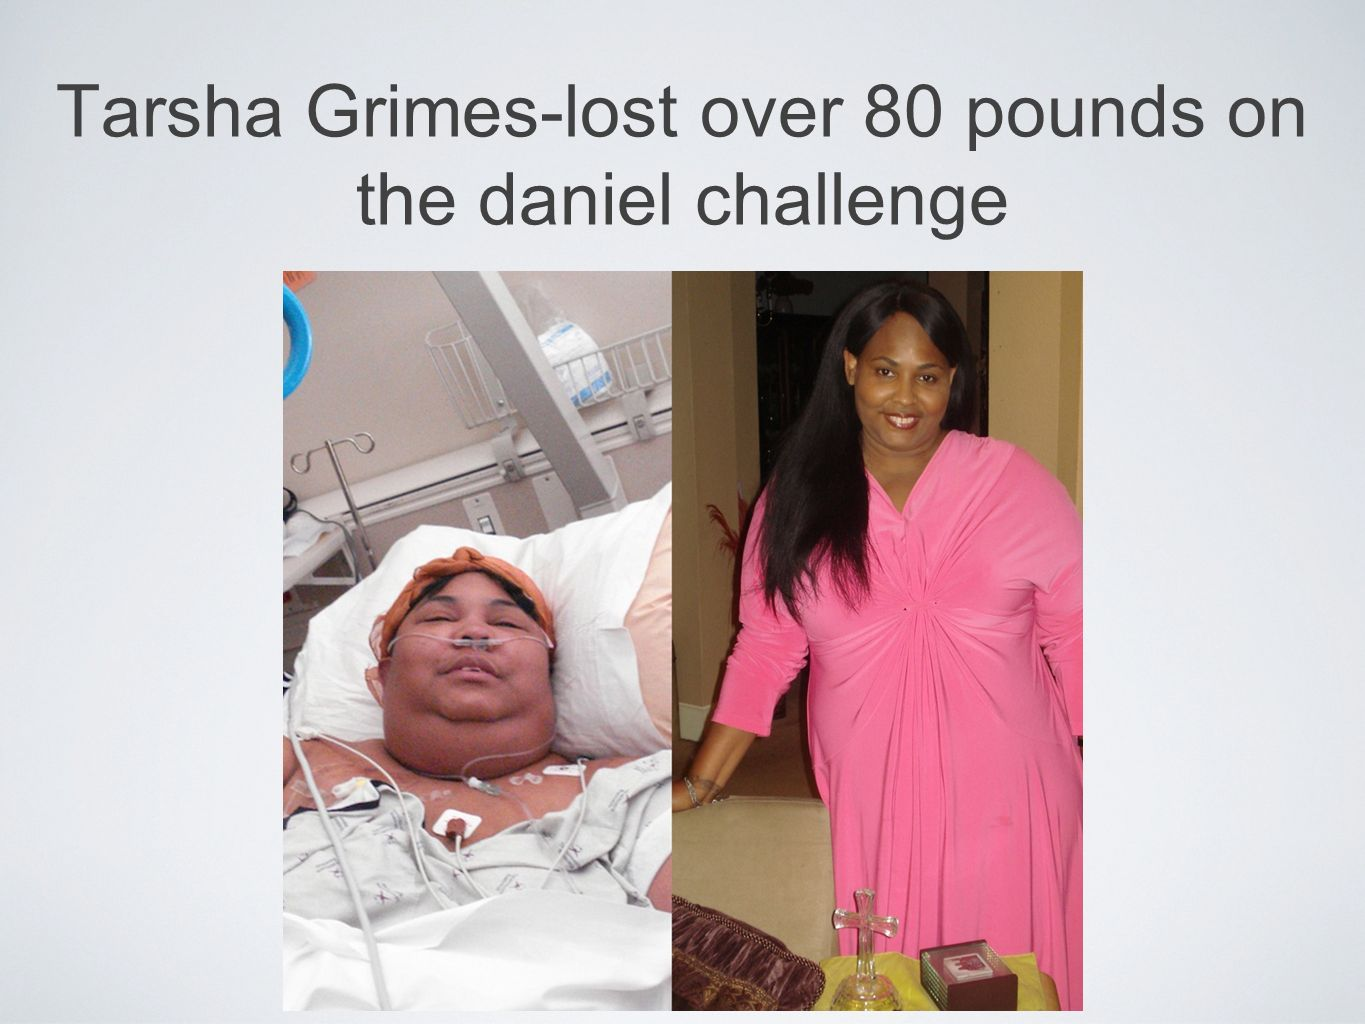 Tarsha Grimes-lost over 80 pounds on the daniel challenge